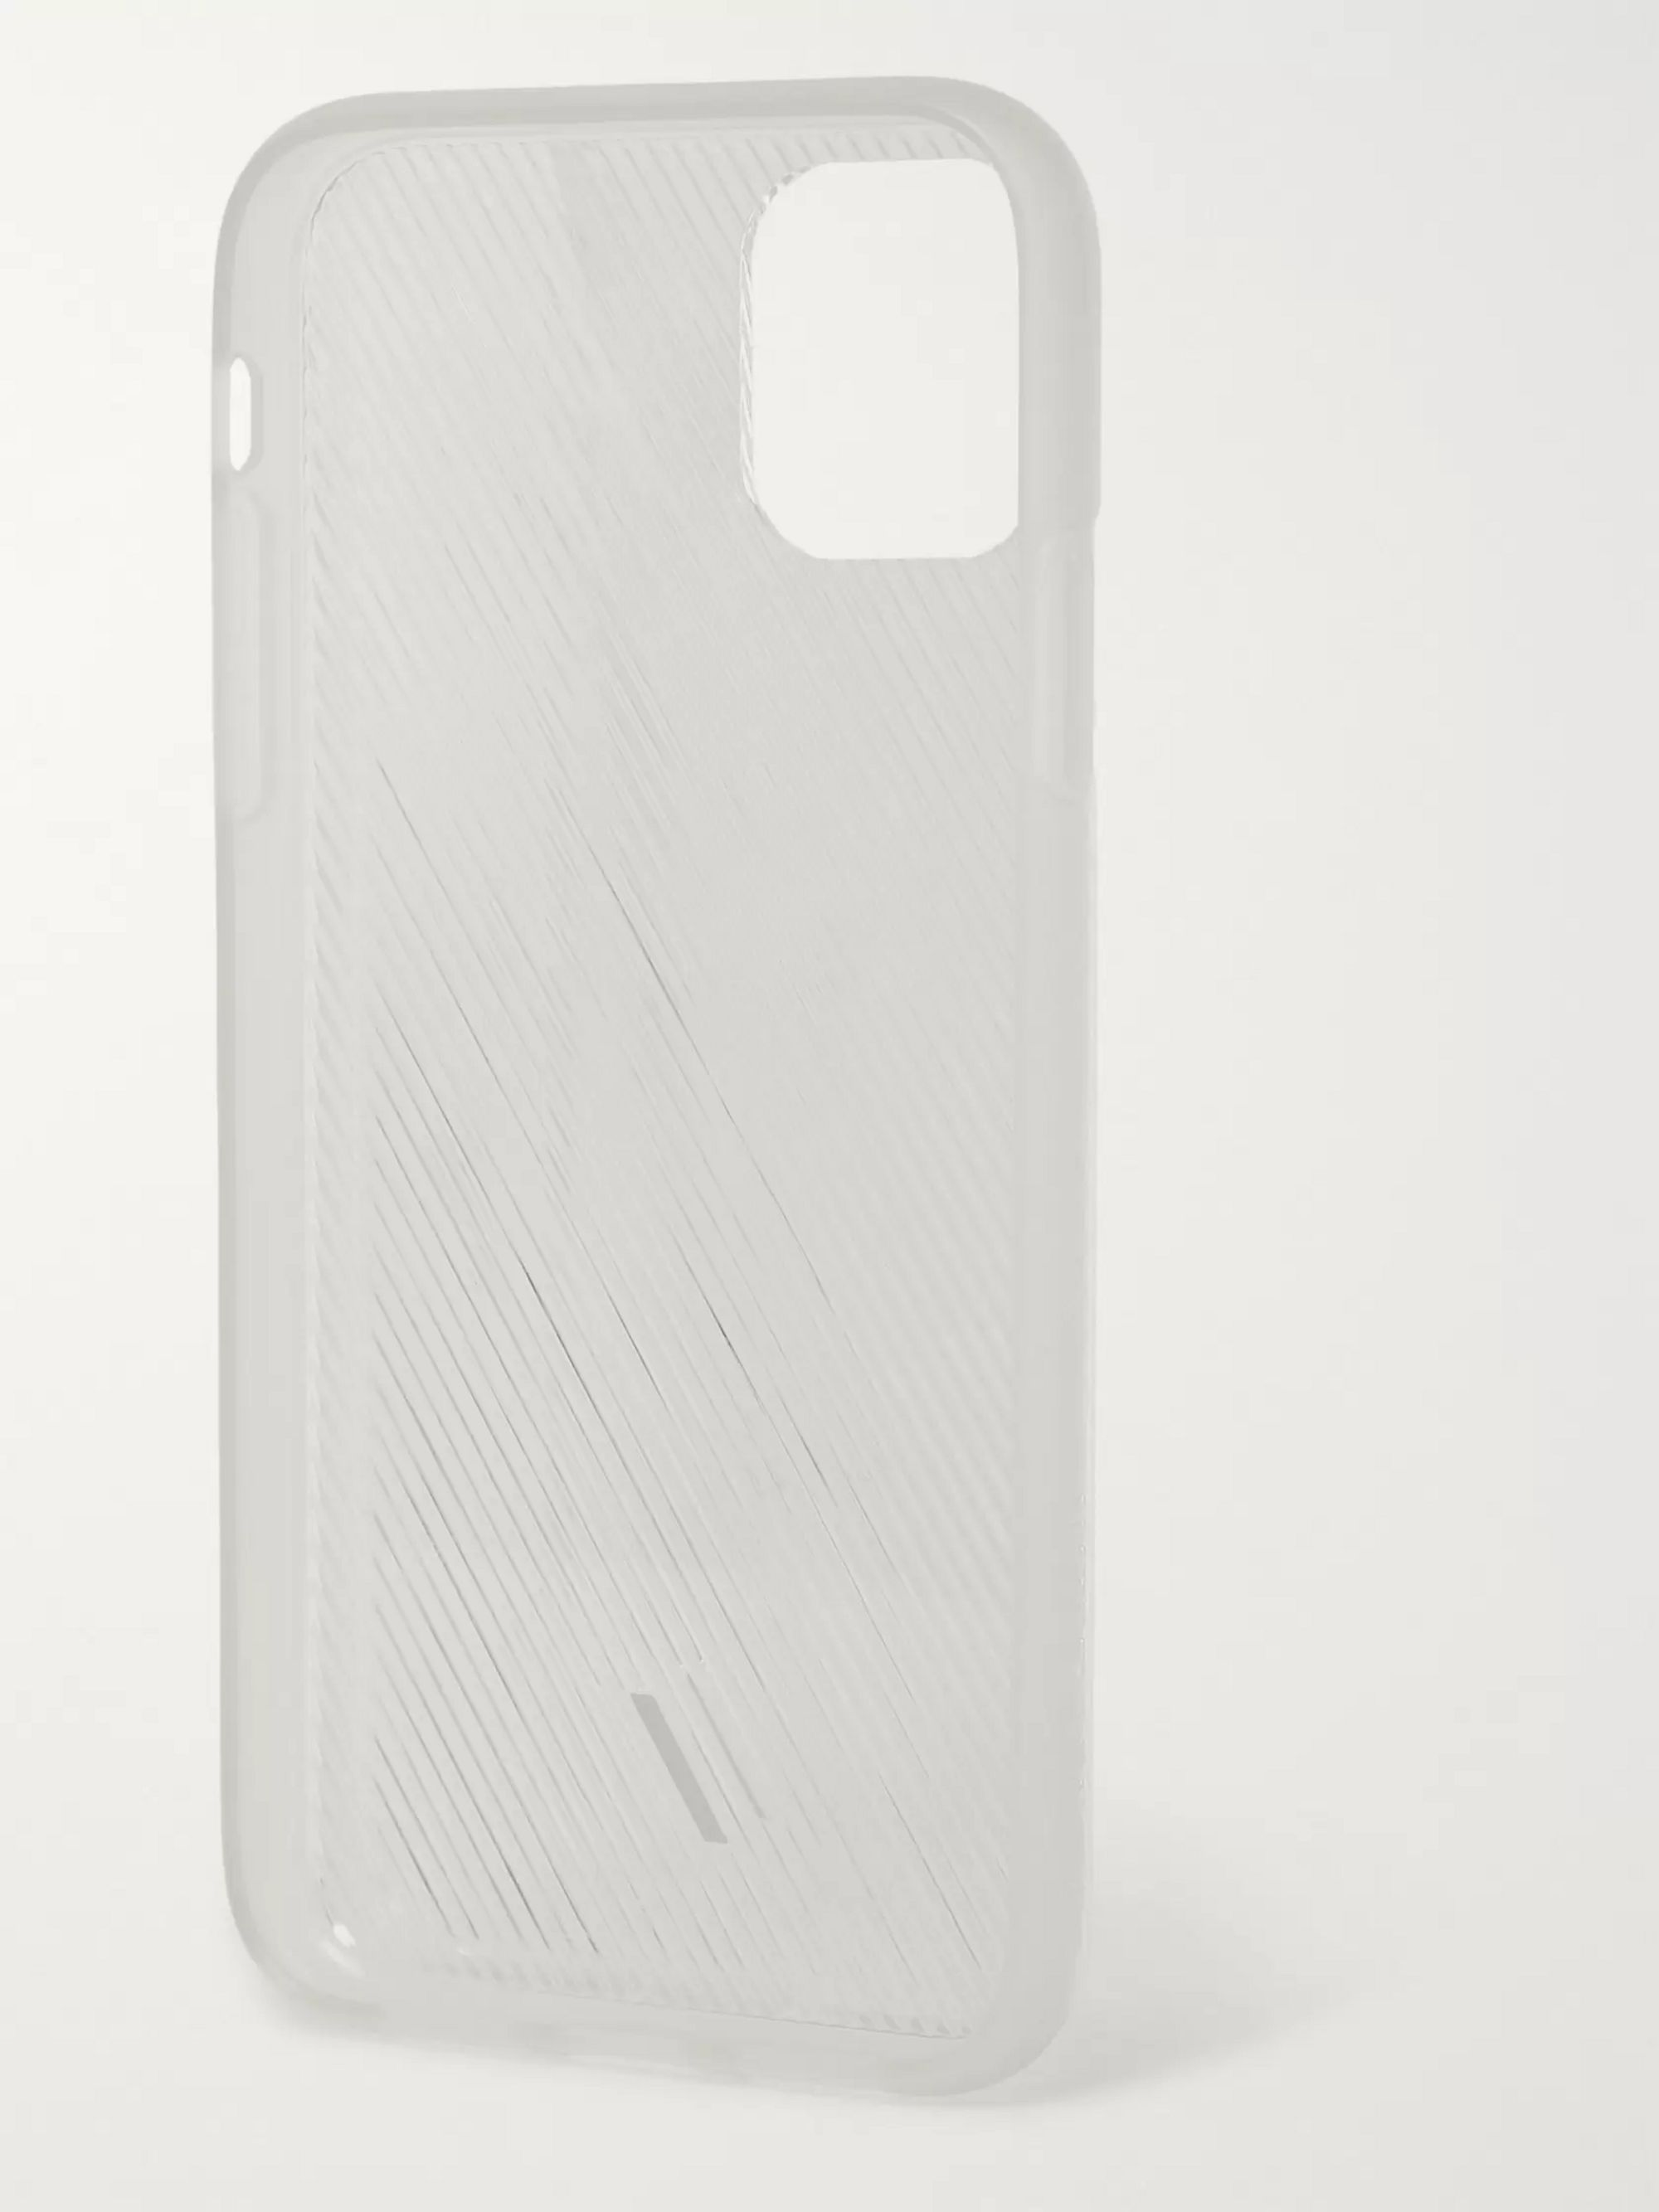 Native Union Clic View iPhone 11 Case